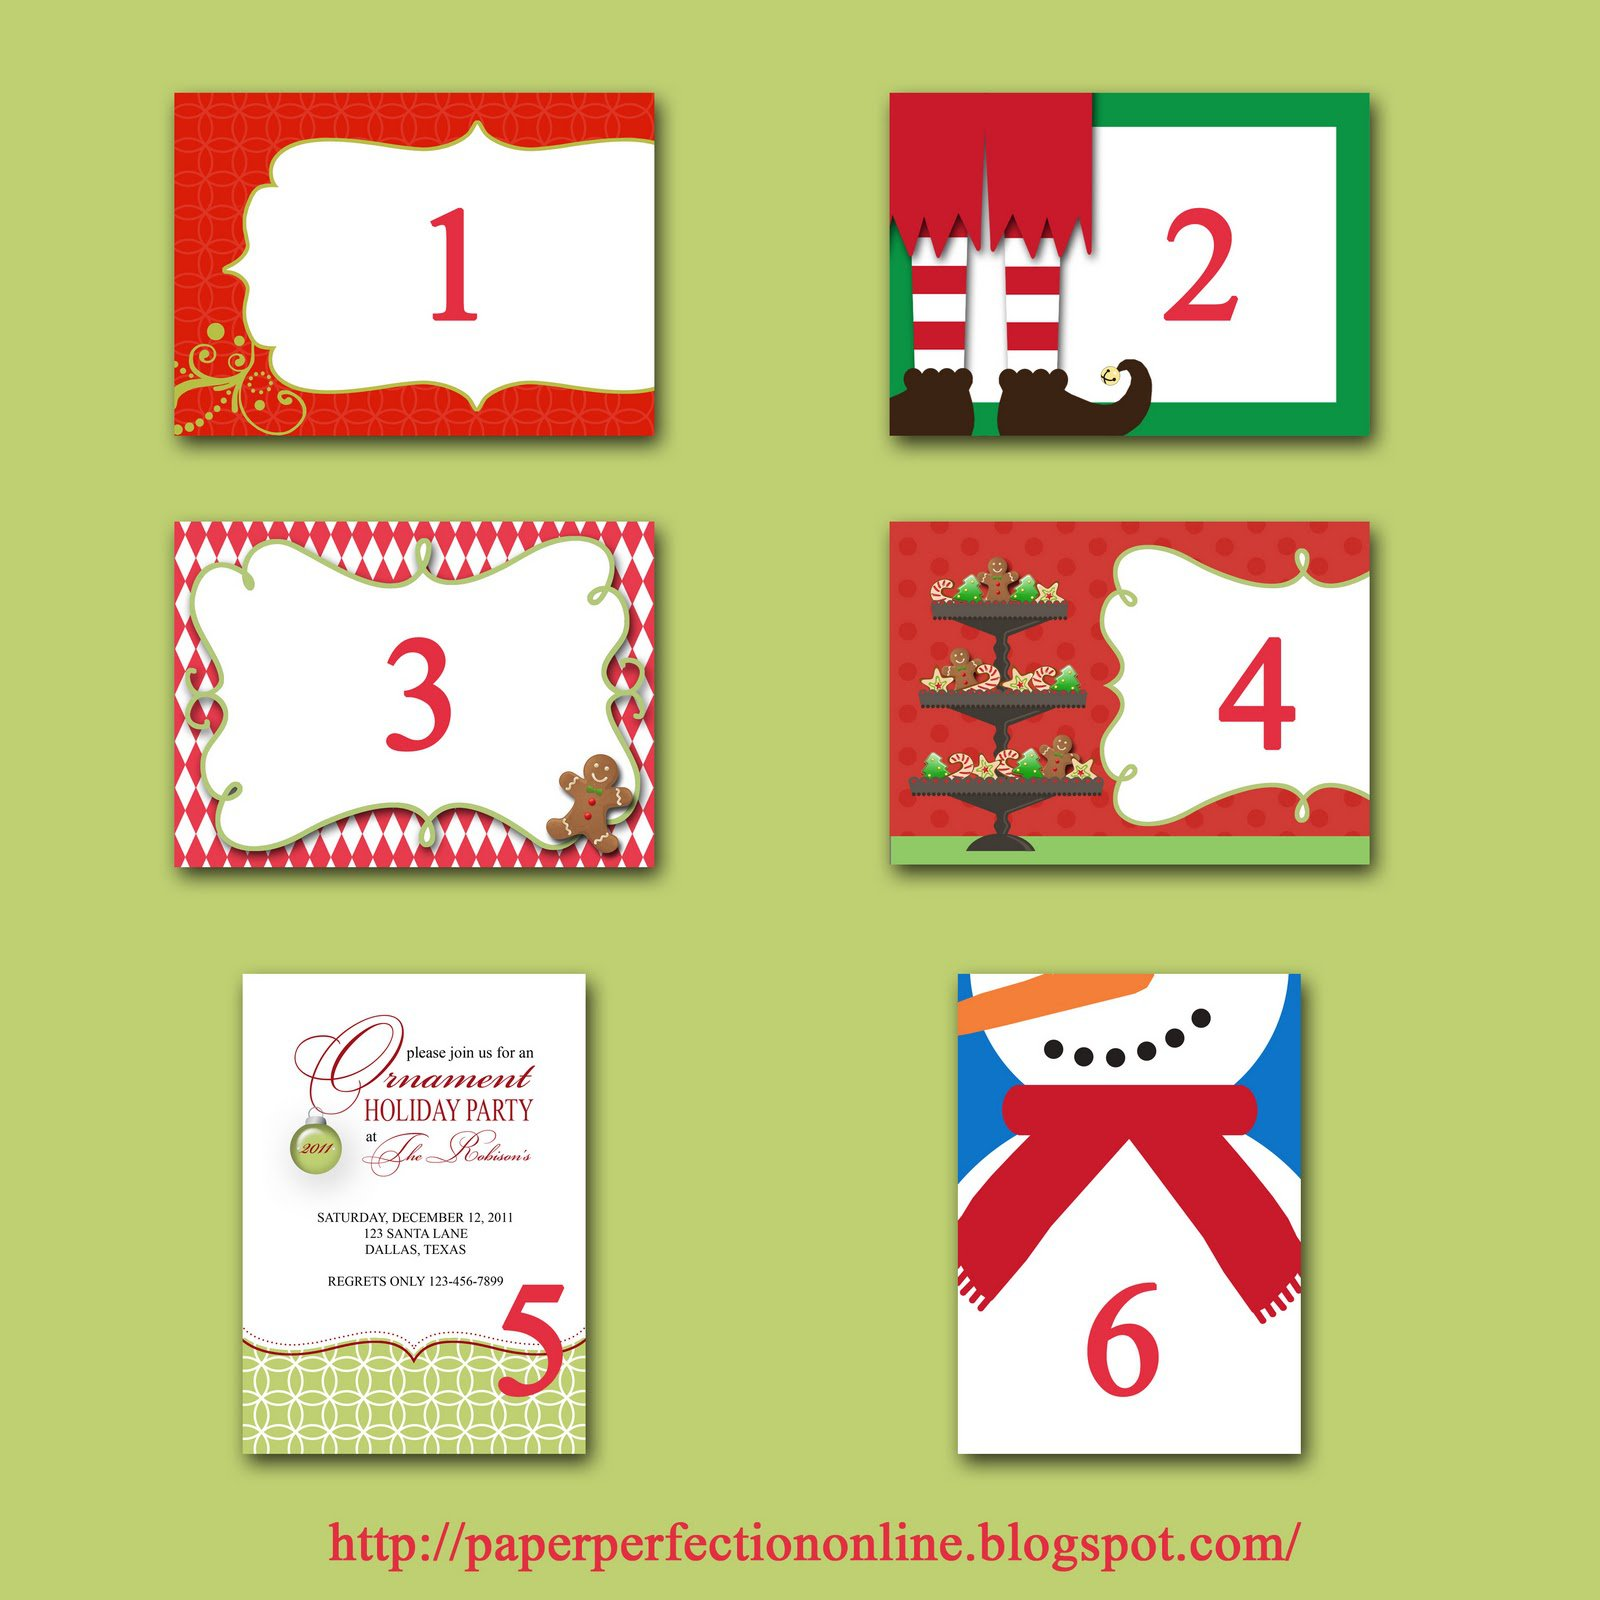 Examples Of Company Christmas Party Invitations